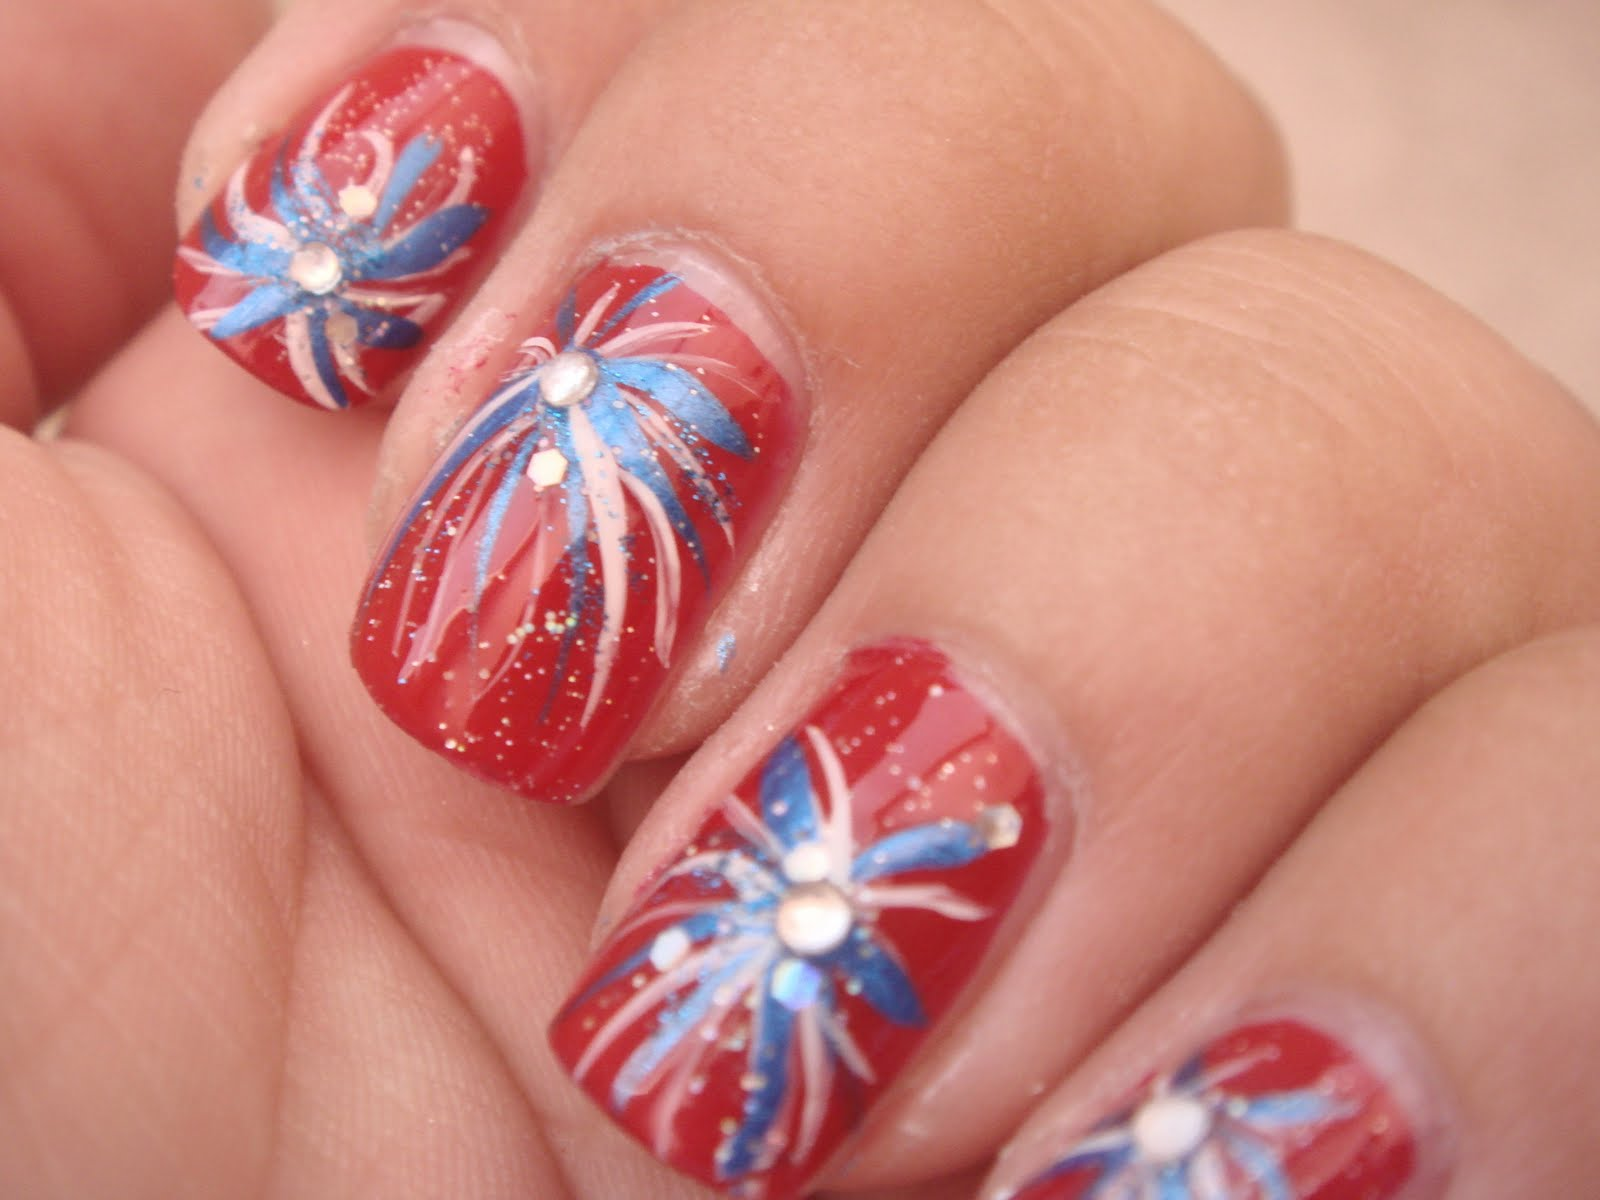 4th of july nail ideas 4th of july firecracker fireworks 4th of july firecracker fireworks nail design manicure red white and blue prinsesfo Choice Image